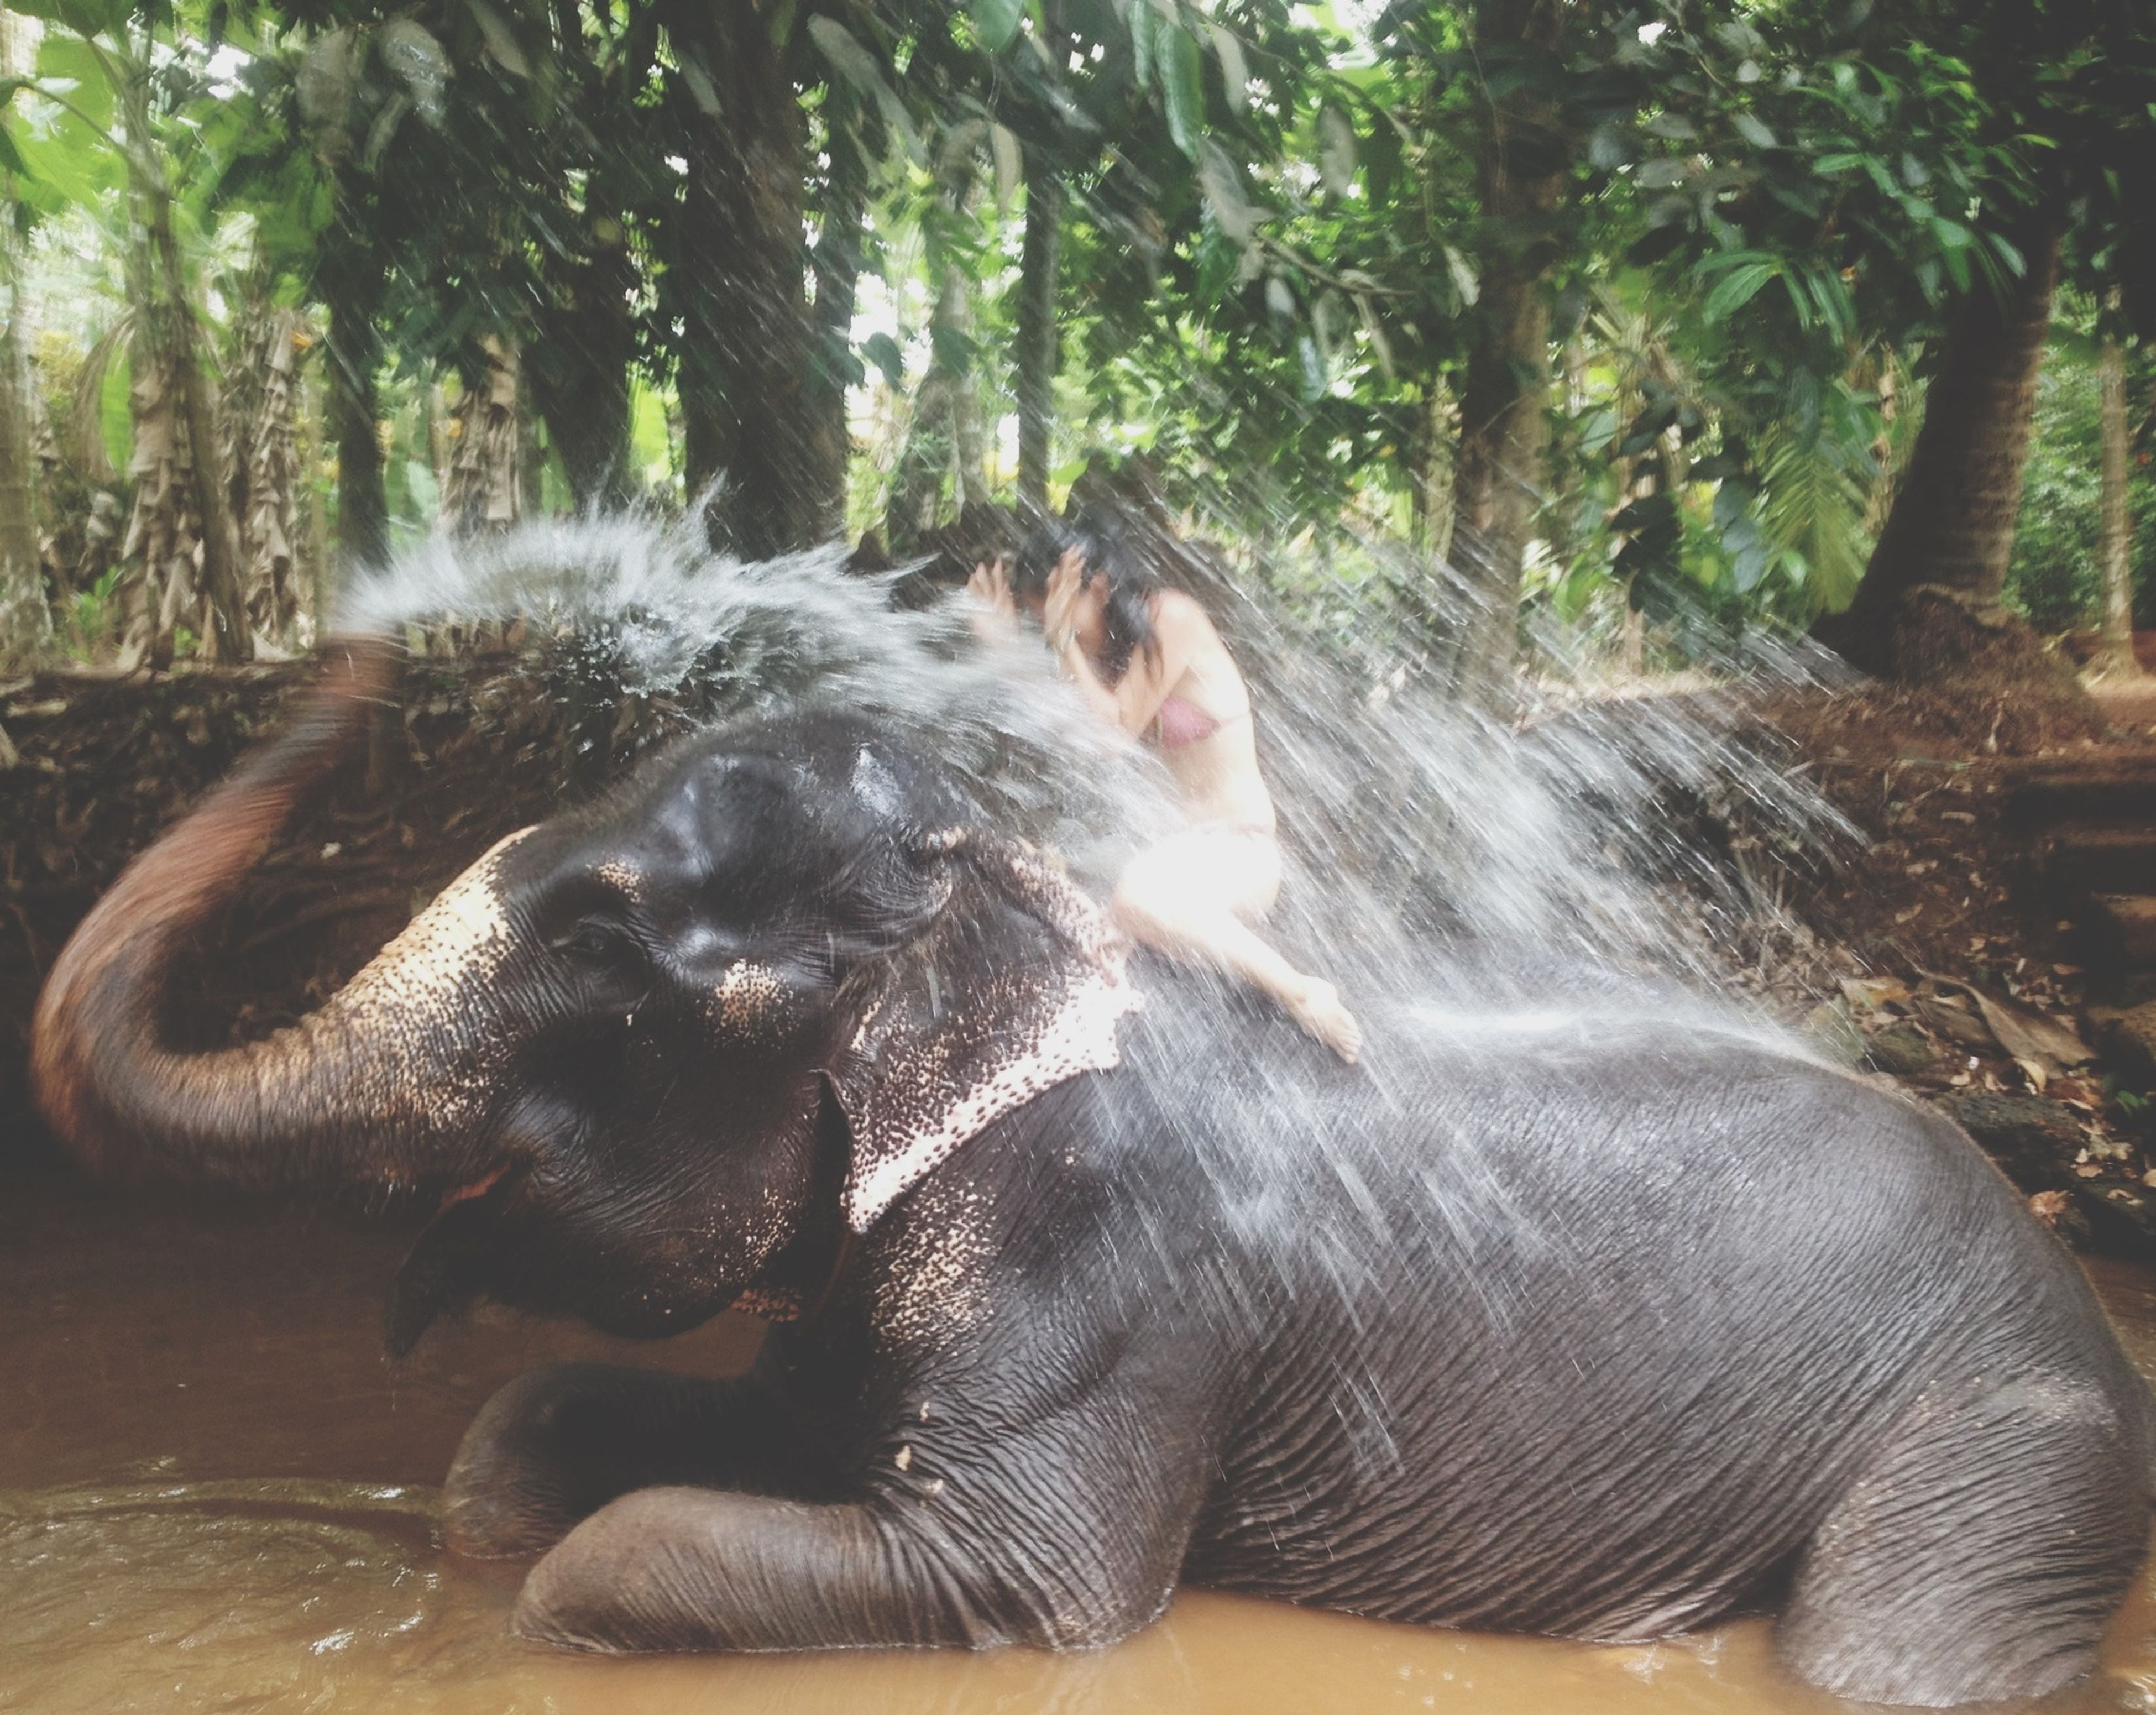 animal themes, one animal, mammal, domestic animals, pets, tree, dog, animal head, relaxation, close-up, animal body part, day, sunlight, side view, resting, outdoors, black color, nature, forest, lying down